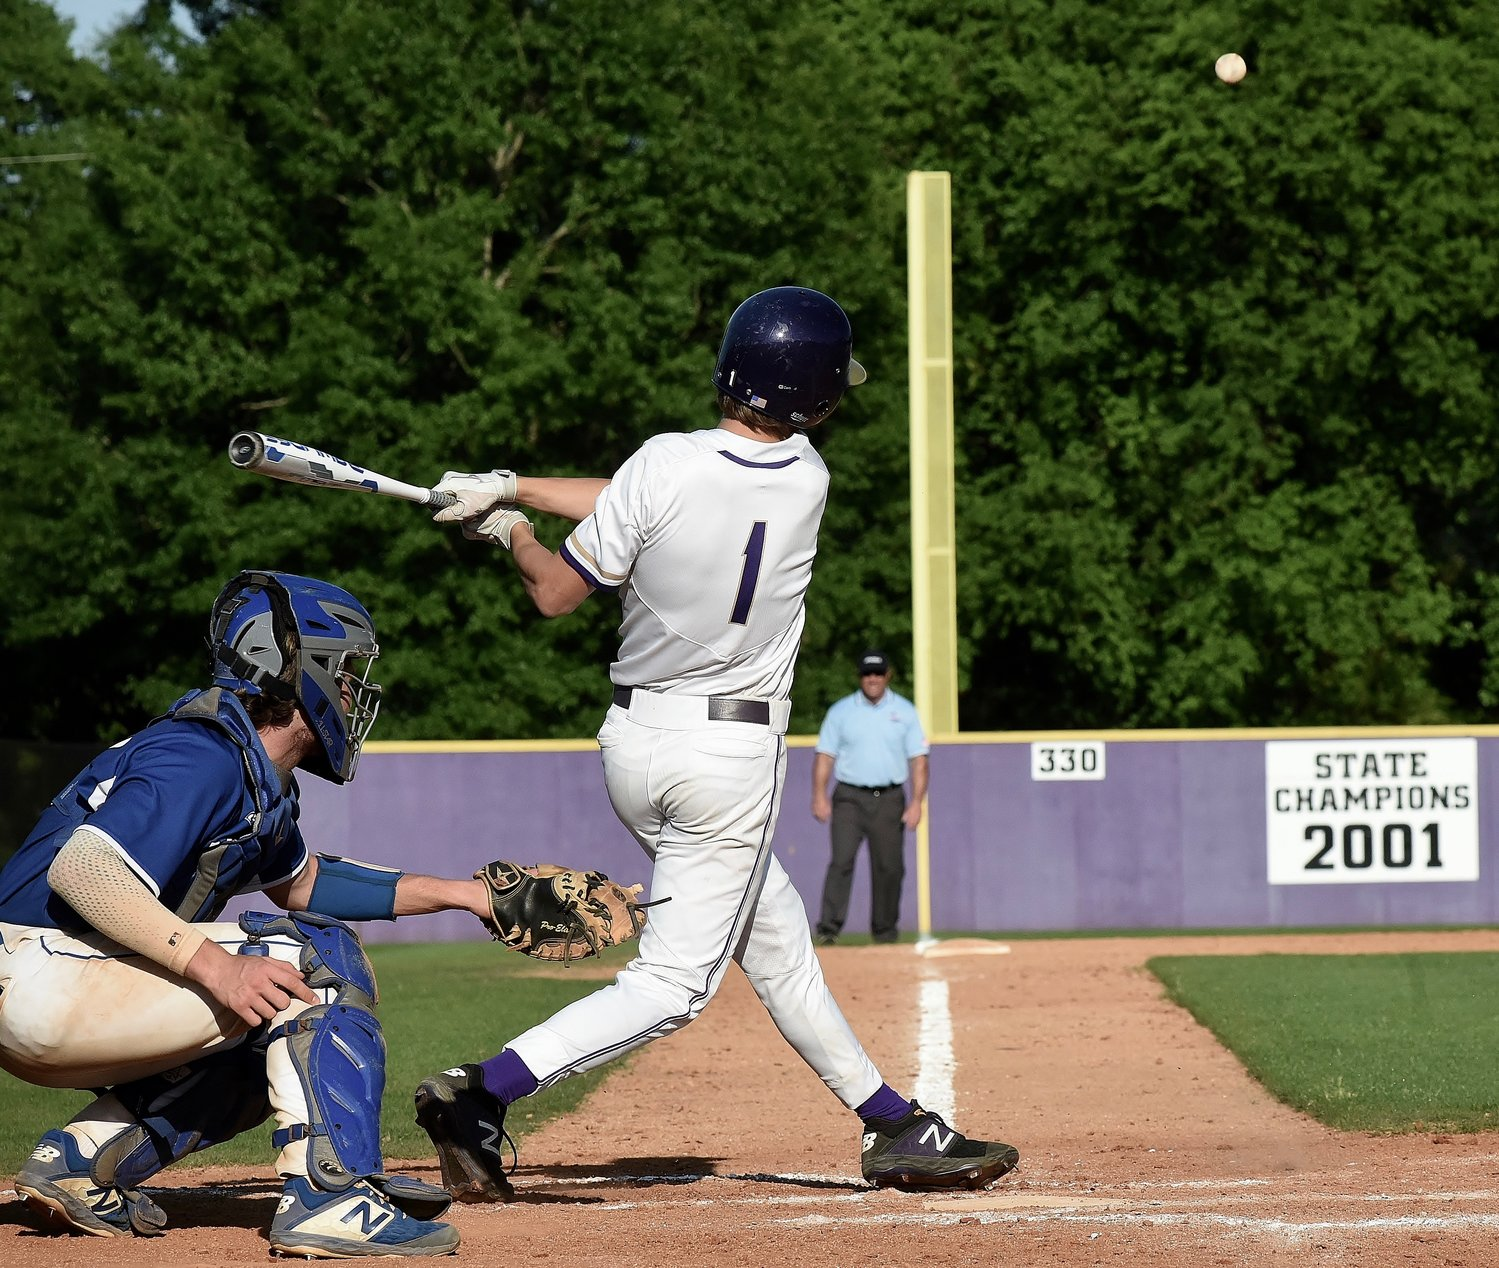 Cartersville senior Kolby Adams chops a single over the Oconee County third baseman heads during Game 1 of a Class 4A state tournament first-round series Wednesday at Richard Bell Field. Adams came around to score the final run in a 10-0, run-rule victory en route to a series sweep.